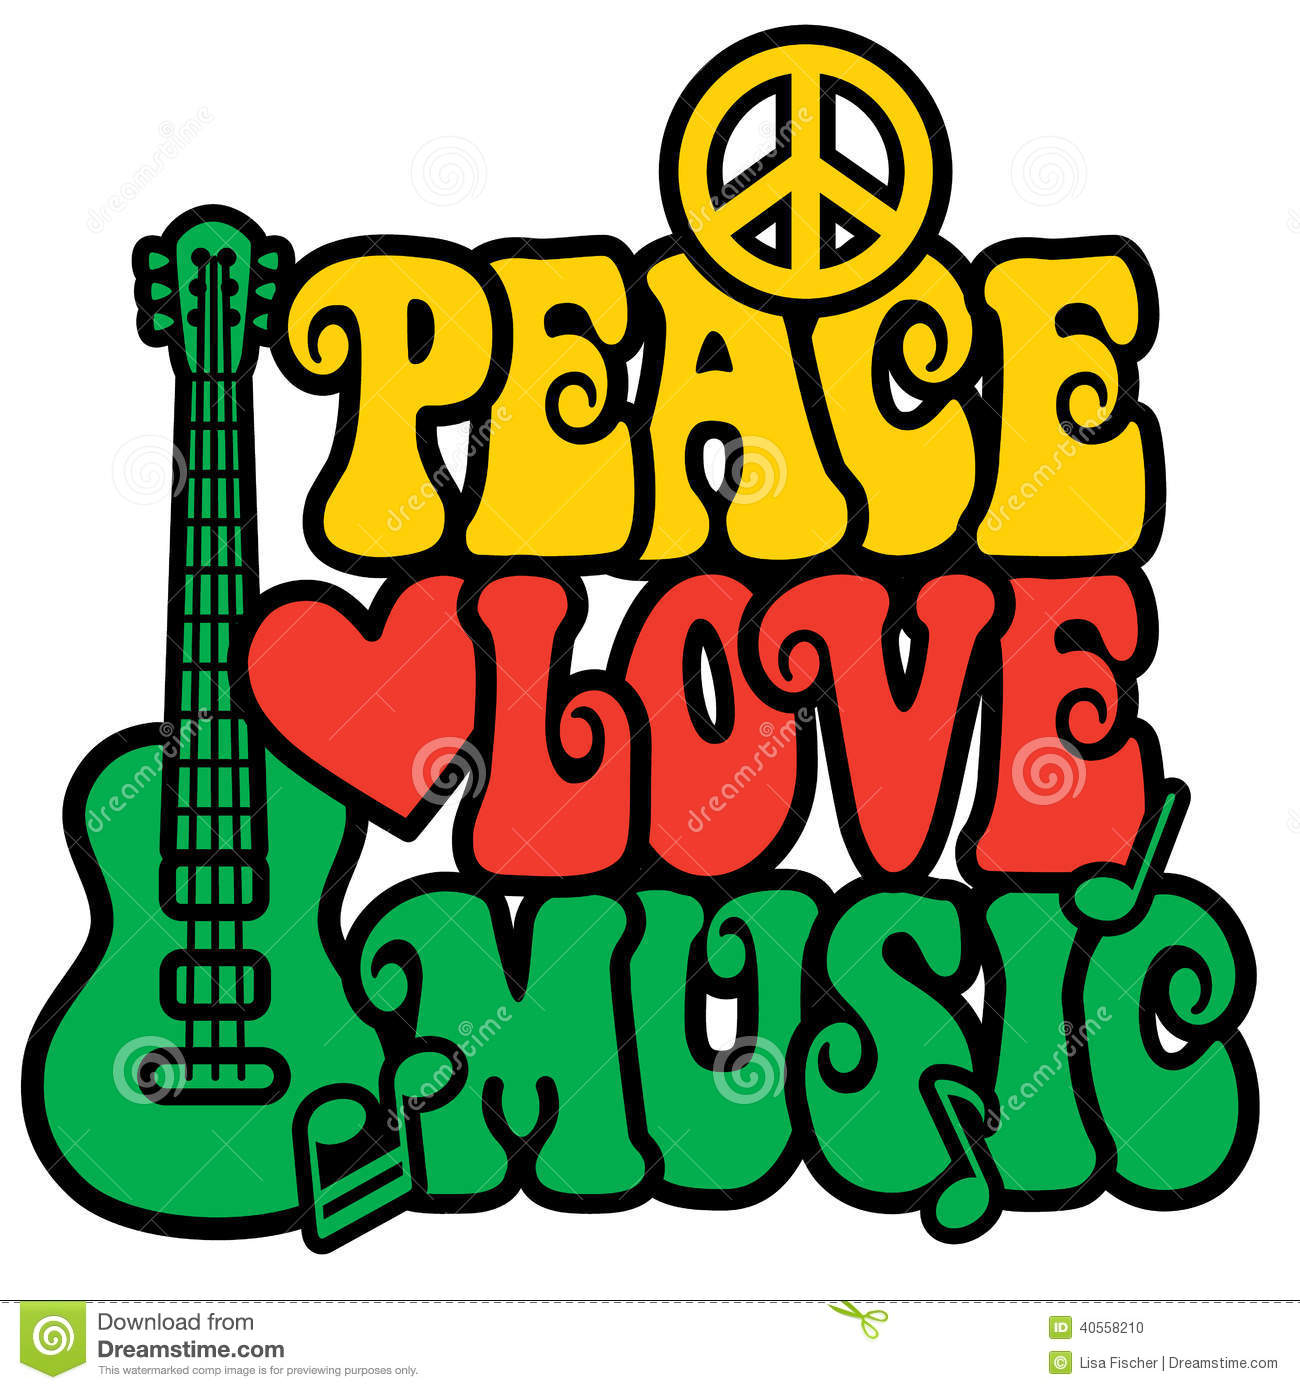 Royalty free reggae music, download music clips, corporate music.